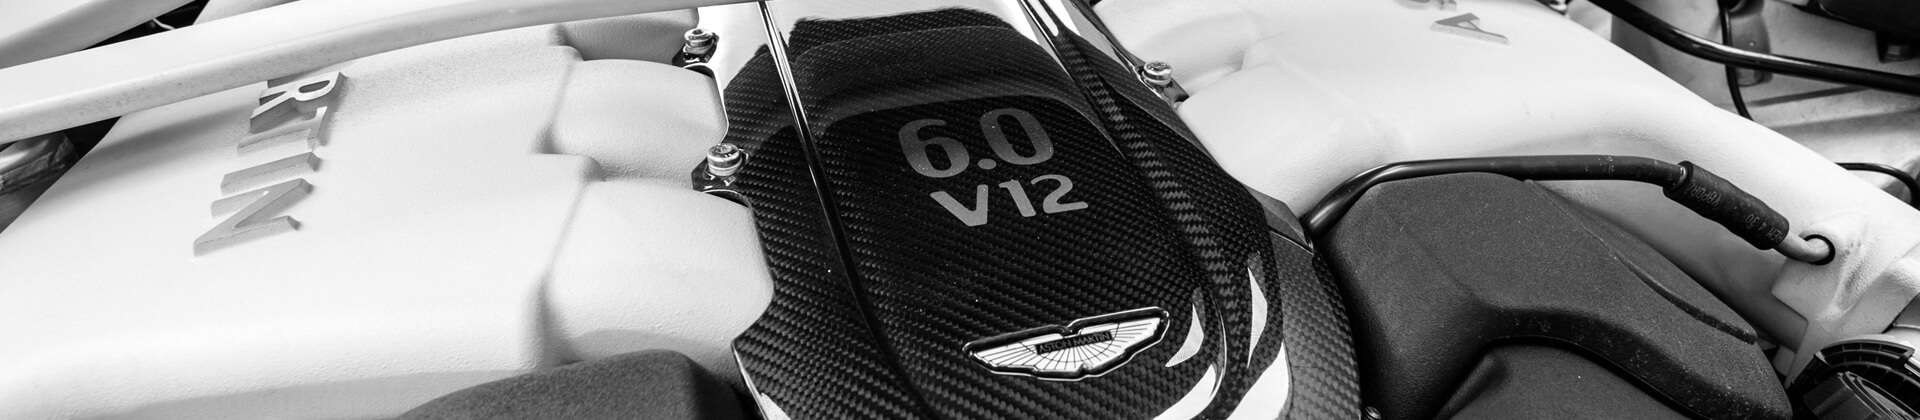 Aston Martin Vantage Power Upgrades